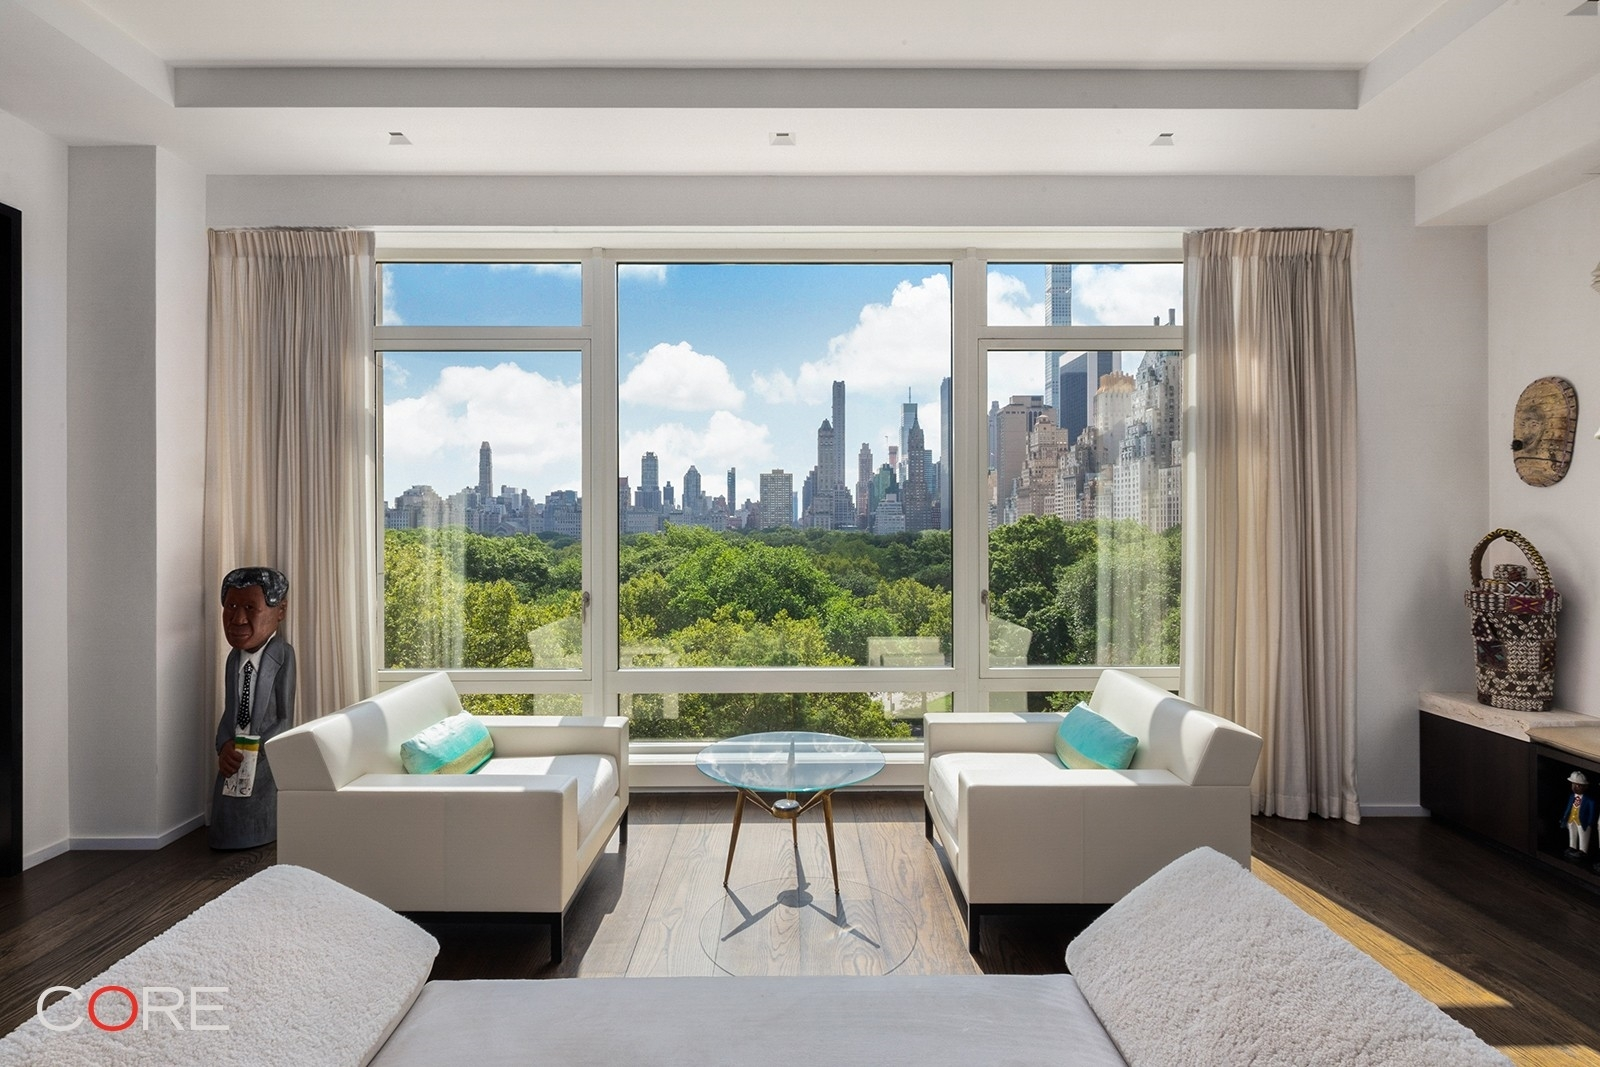 Property at 15 Central Park West, 9A Lincoln Square, New York, NY 10023